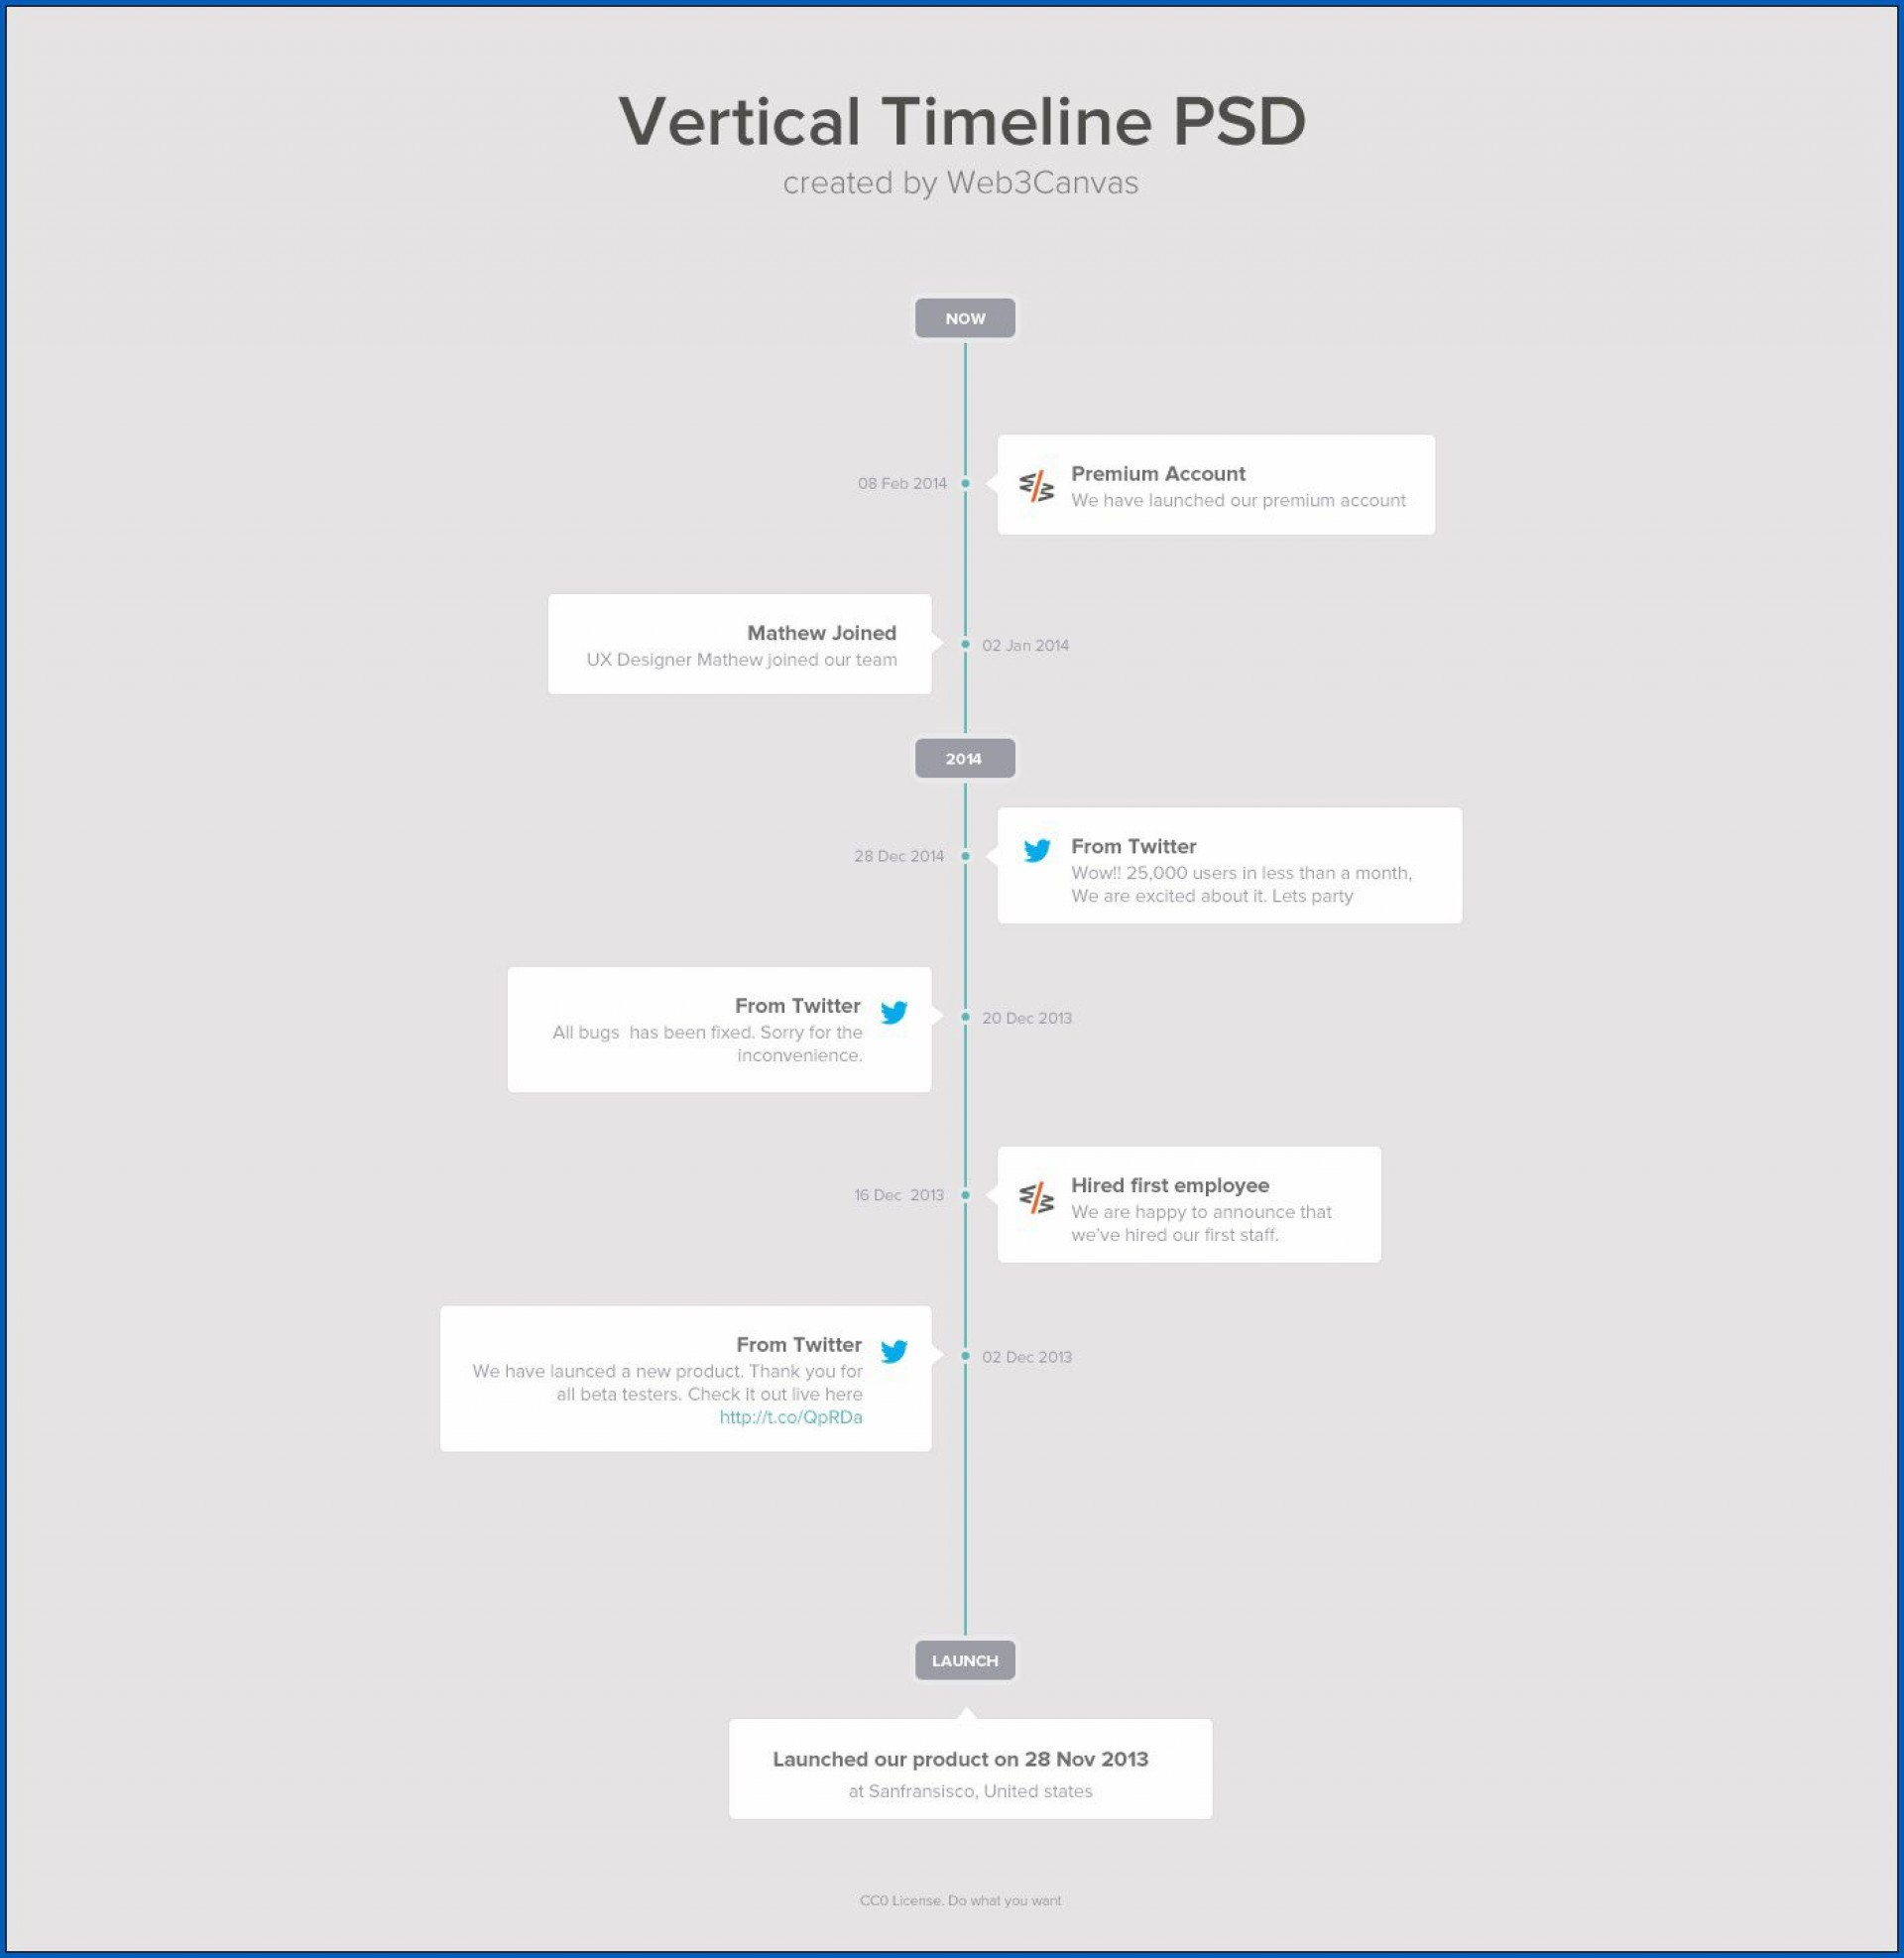 009 Breathtaking Vertical Timeline Template For Word Highest Quality  Blank1920